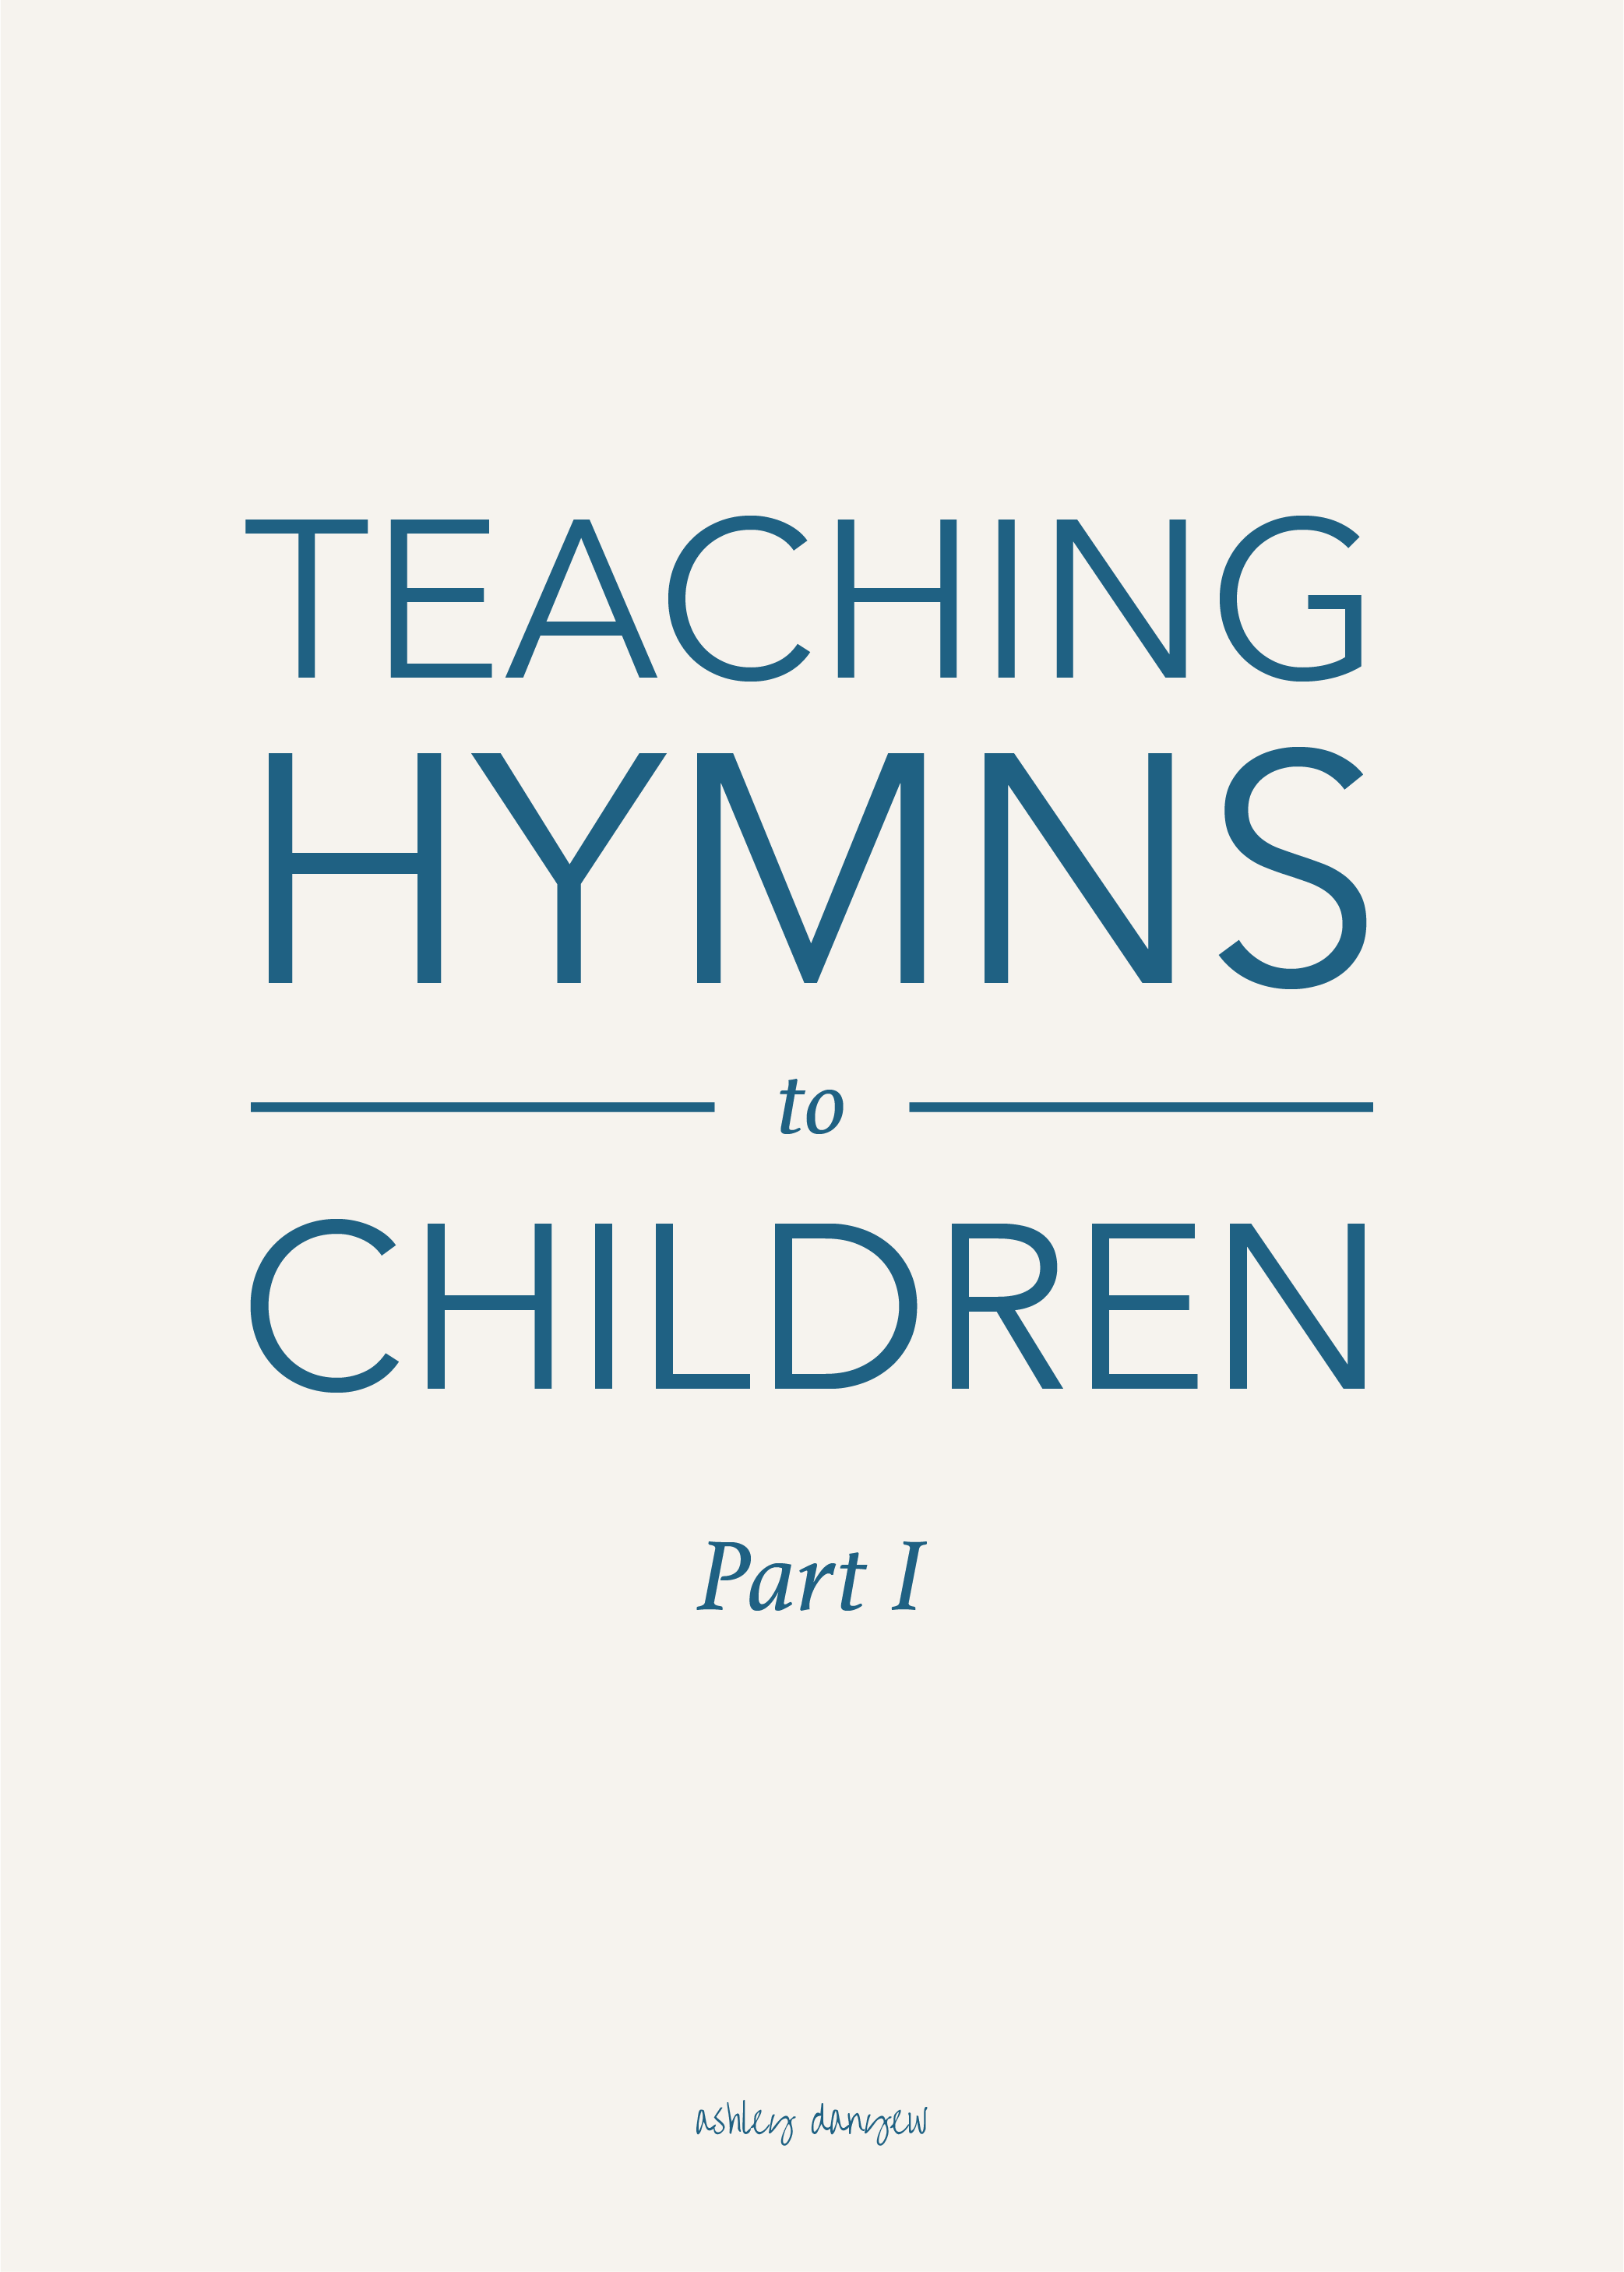 Teaching Hymns to Children_I.png